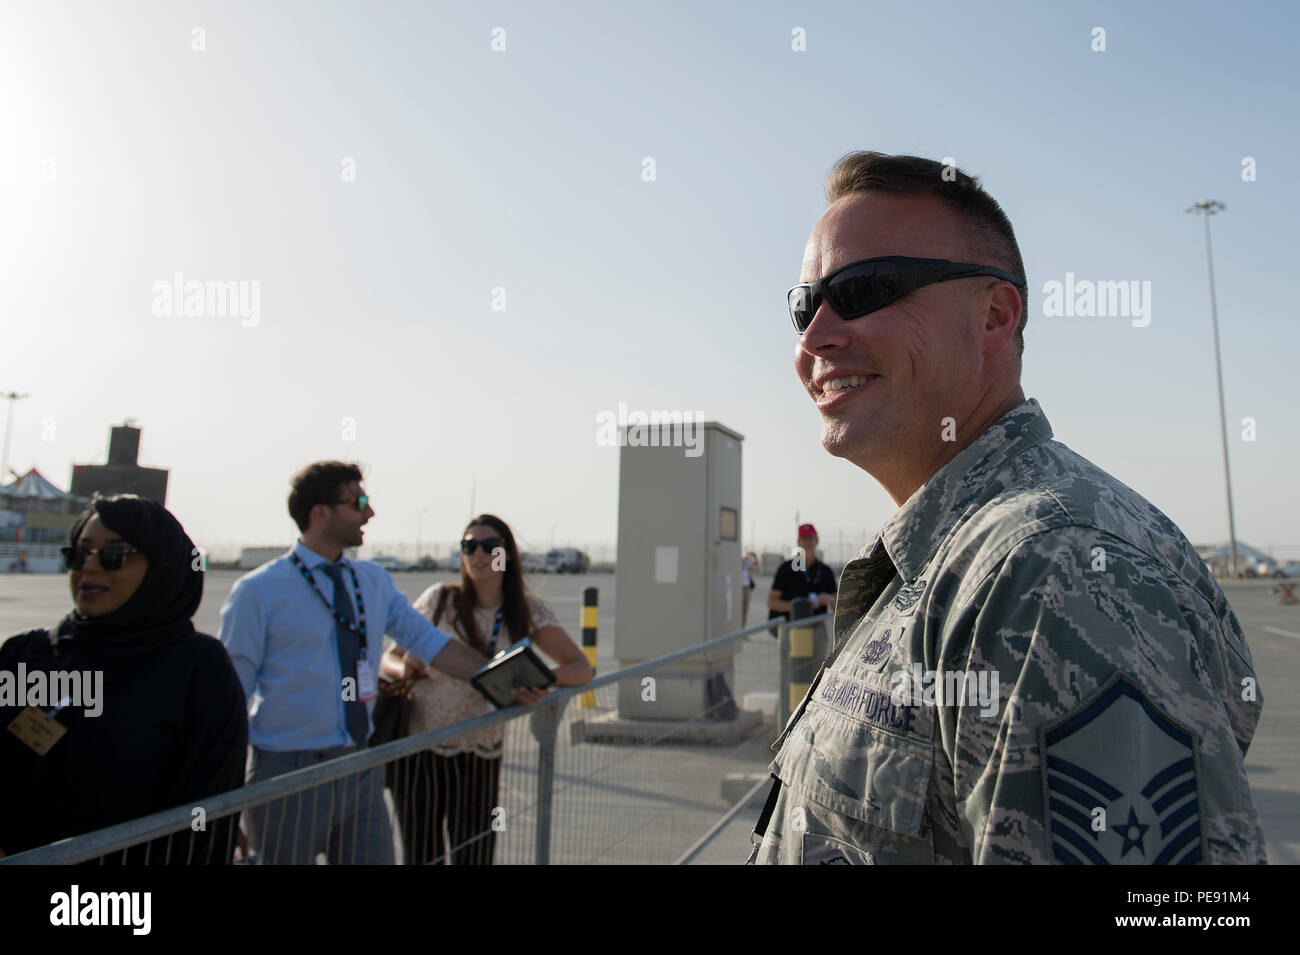 U.S. Air Force Master Sgt. Kevin Martens, U.S. Air Forces Central Command airshow force protection lead, talks to spectators at the 2015 Dubai Air Show on Nov. 10, 2015, United Arab Emirates. The air show is a biennial event and is recognized as the premier aviation and air industry event in the Gulf and Middle East region and is one of the largest airs hows in the world. (U.S. Air Force photo by Tech. Sgt. Nathan Lipscomb) - Stock Image